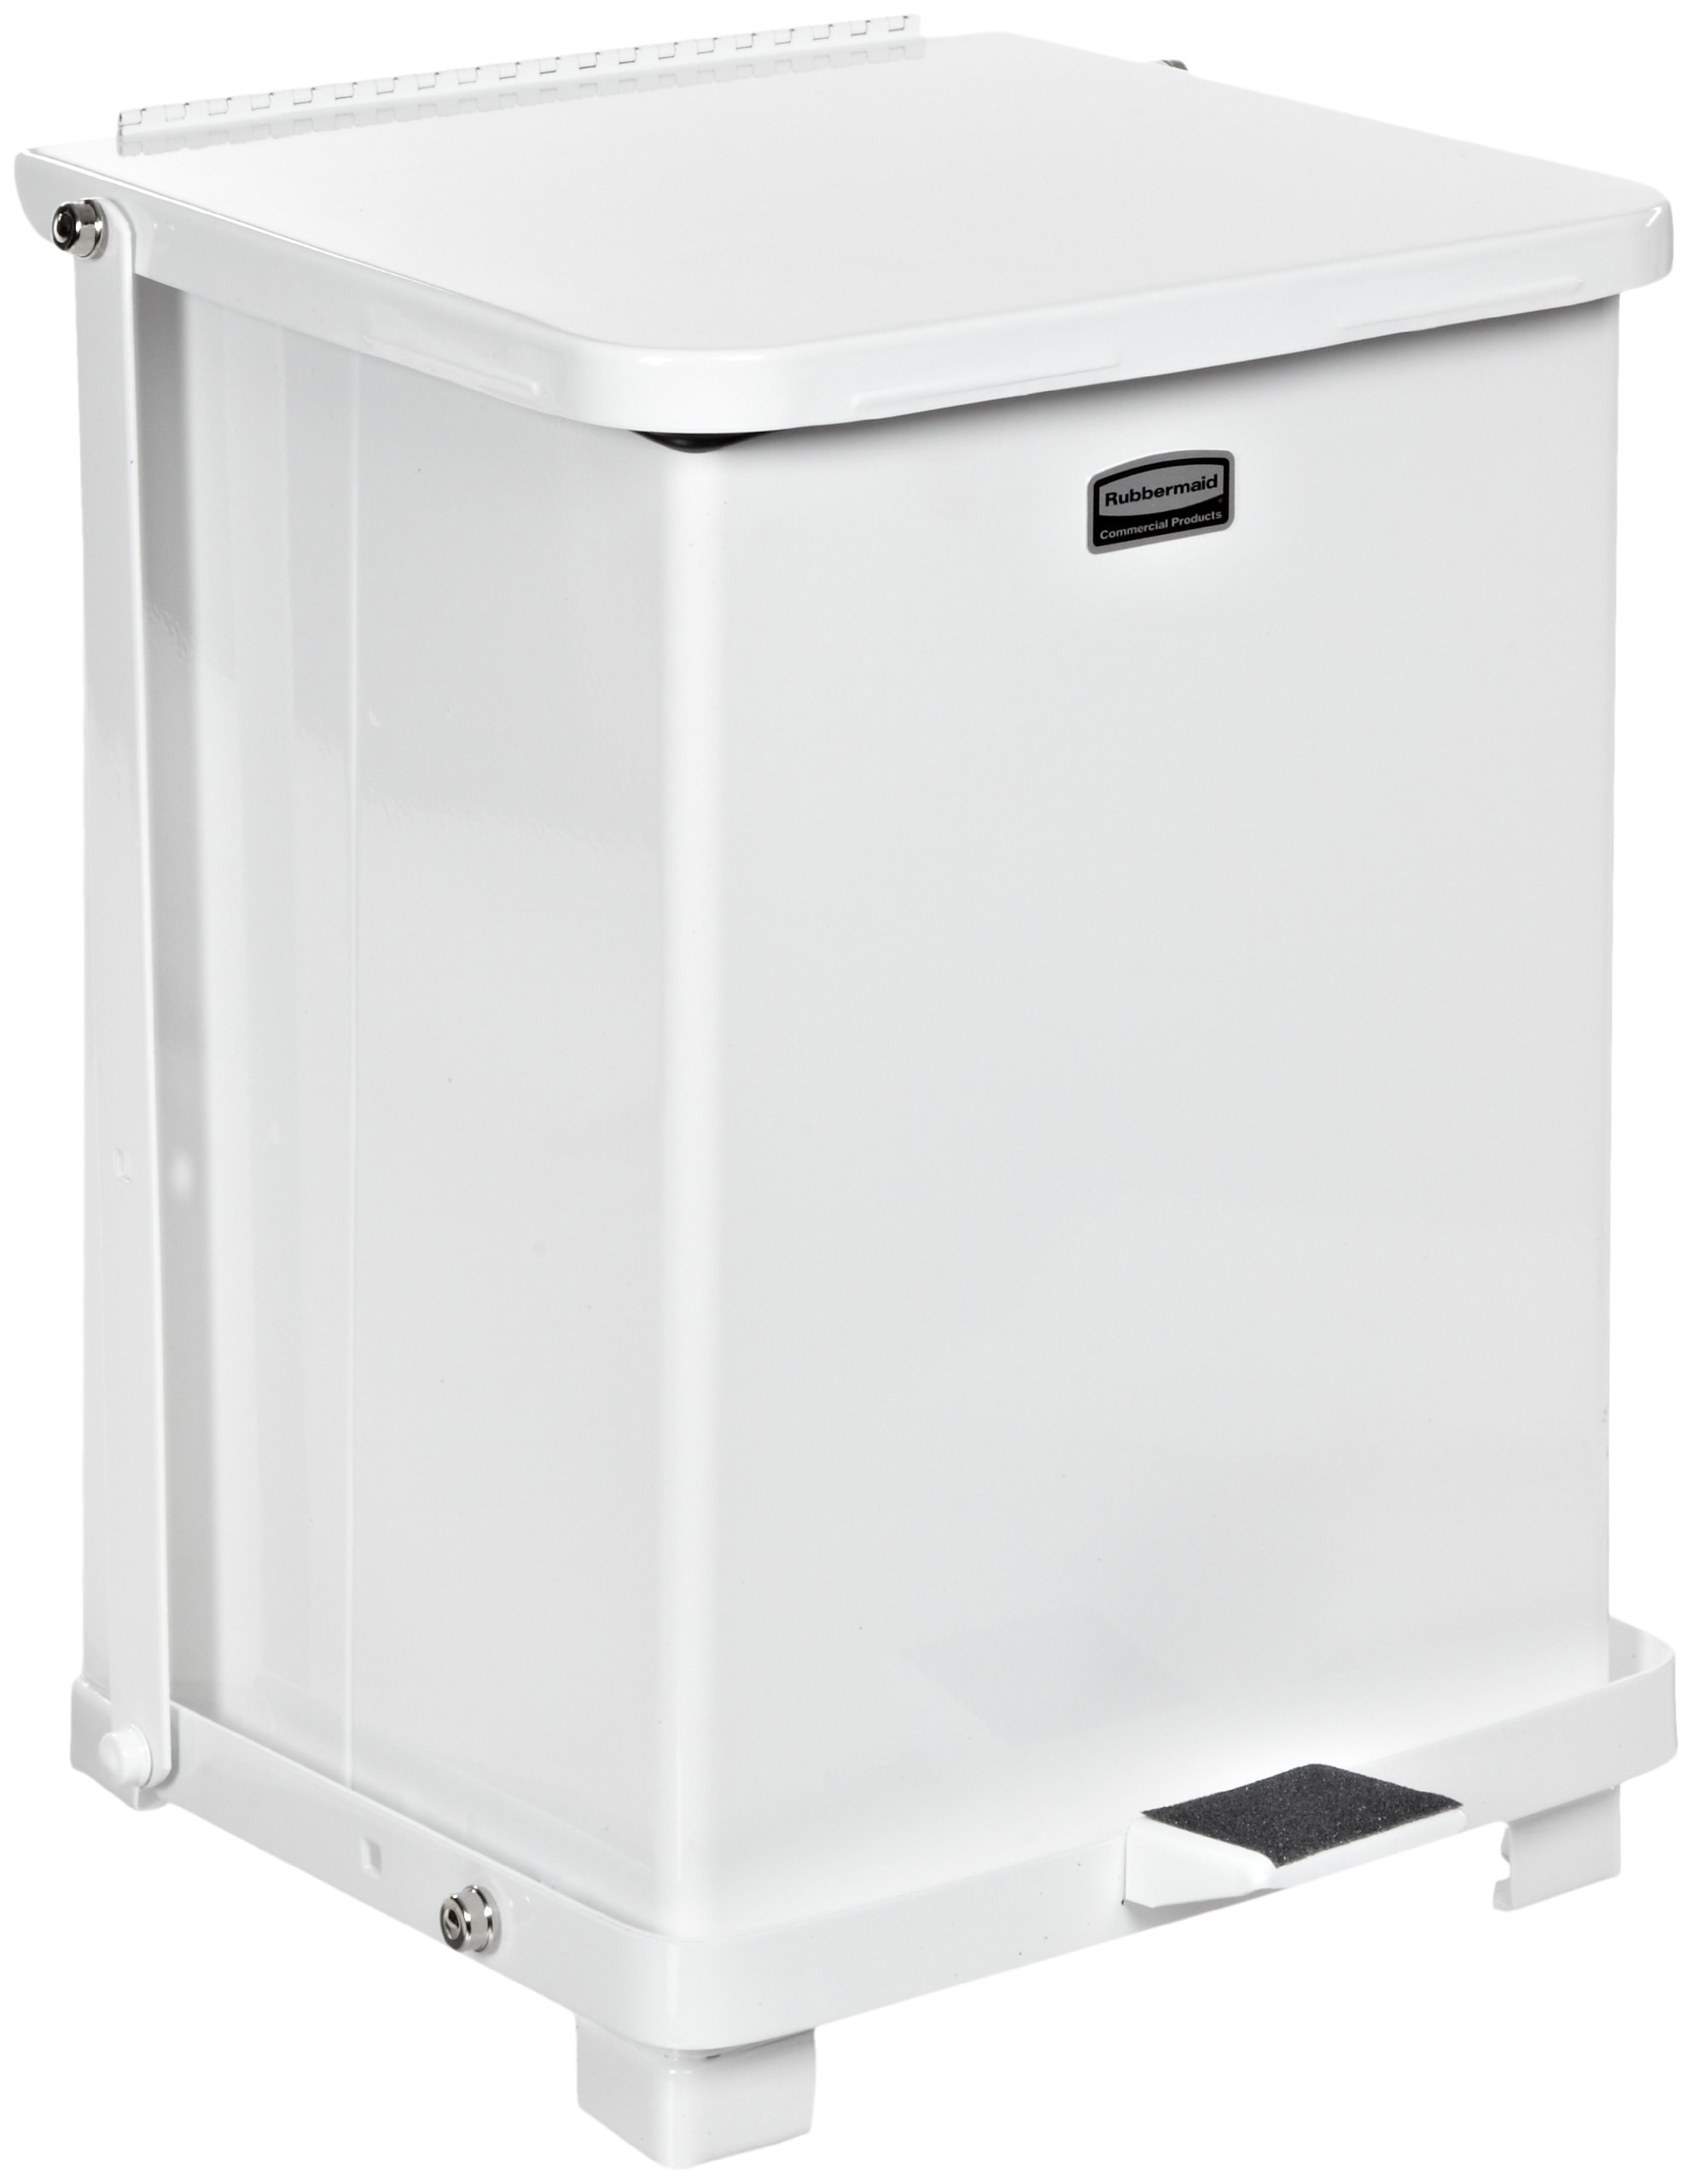 Rubbermaid Commercial FGST7ERBWH The Defenders Steel Step Trash Can with Retainer Bands, 7-Gallon, White